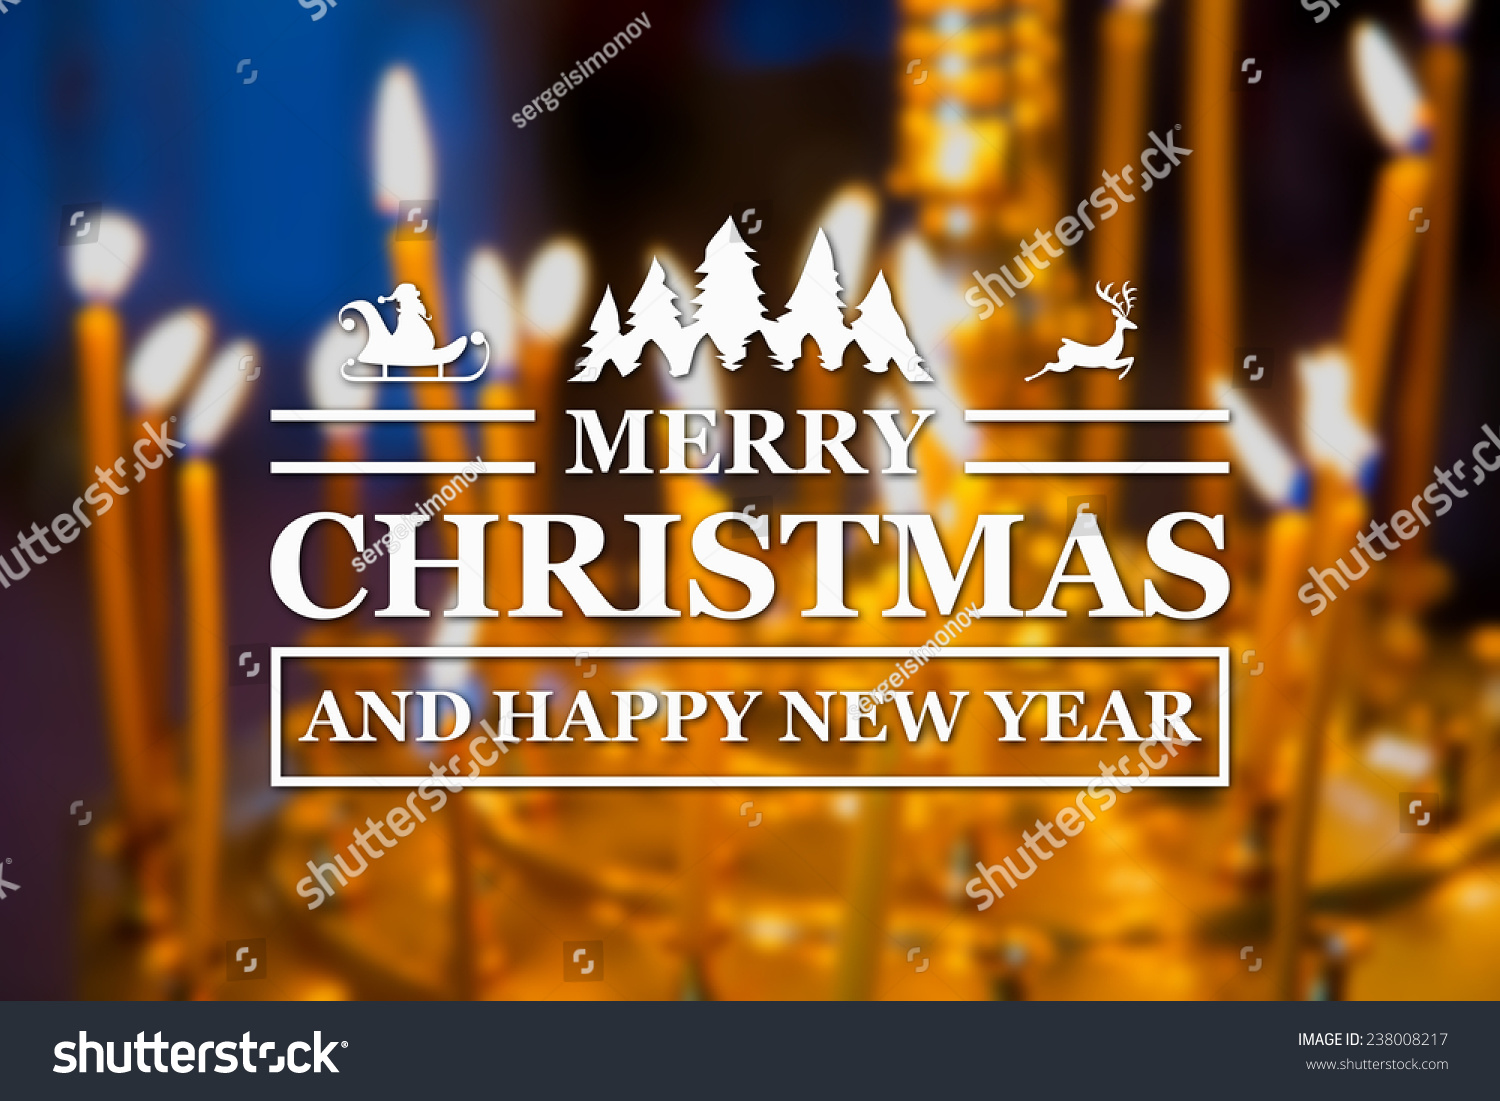 merry christmas and new year greeting card on blurred glowing yellow church candles on background